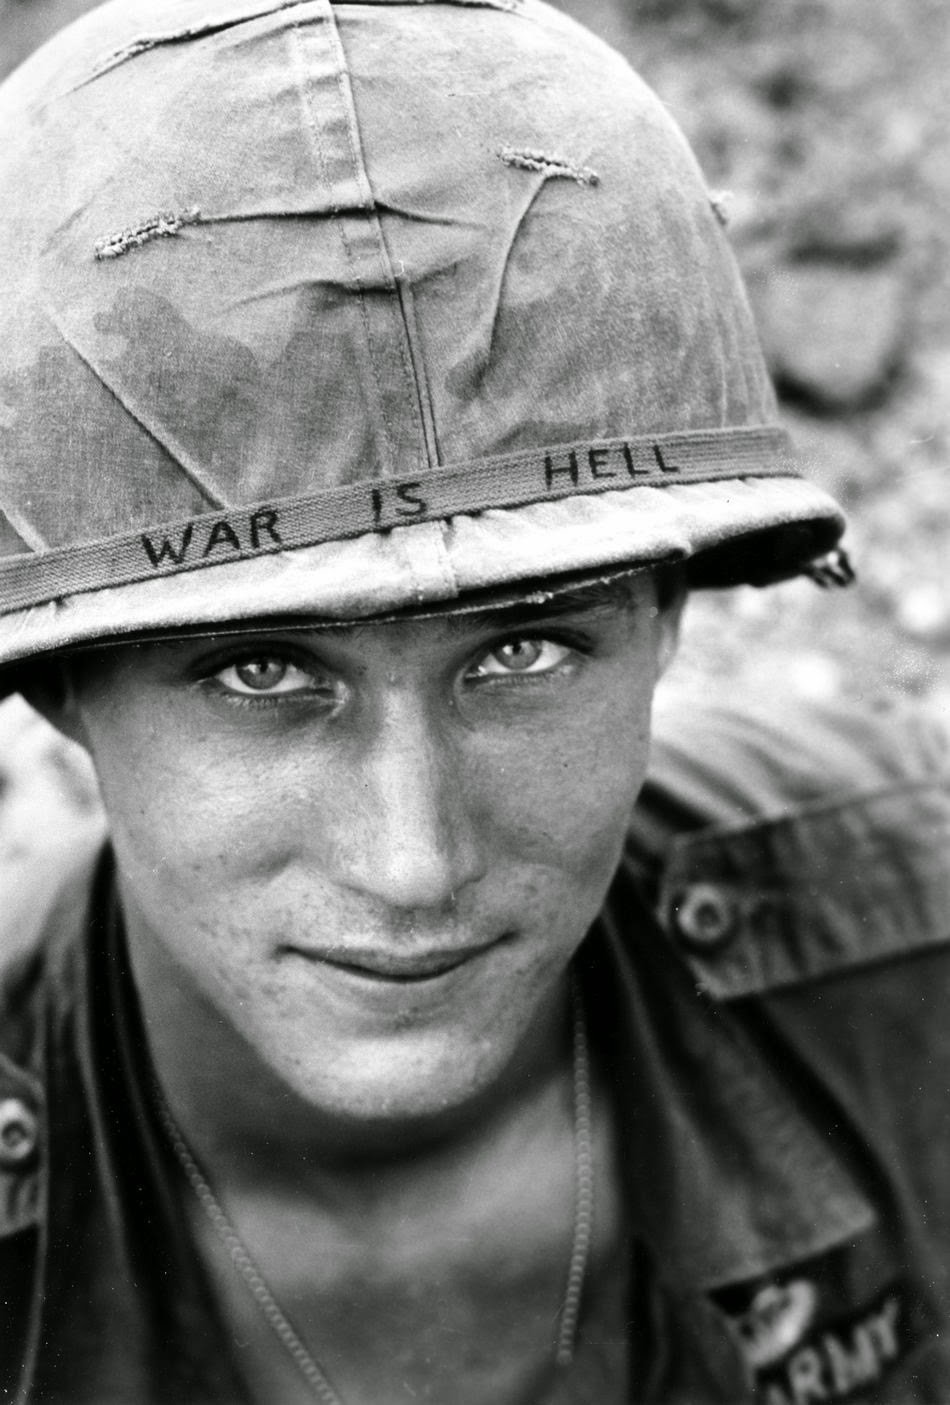 During the Vietnam War on June 18, 1965 173rd Airborne Brigade Battalion member Larry Wayne Chaffin smiles for the camera.